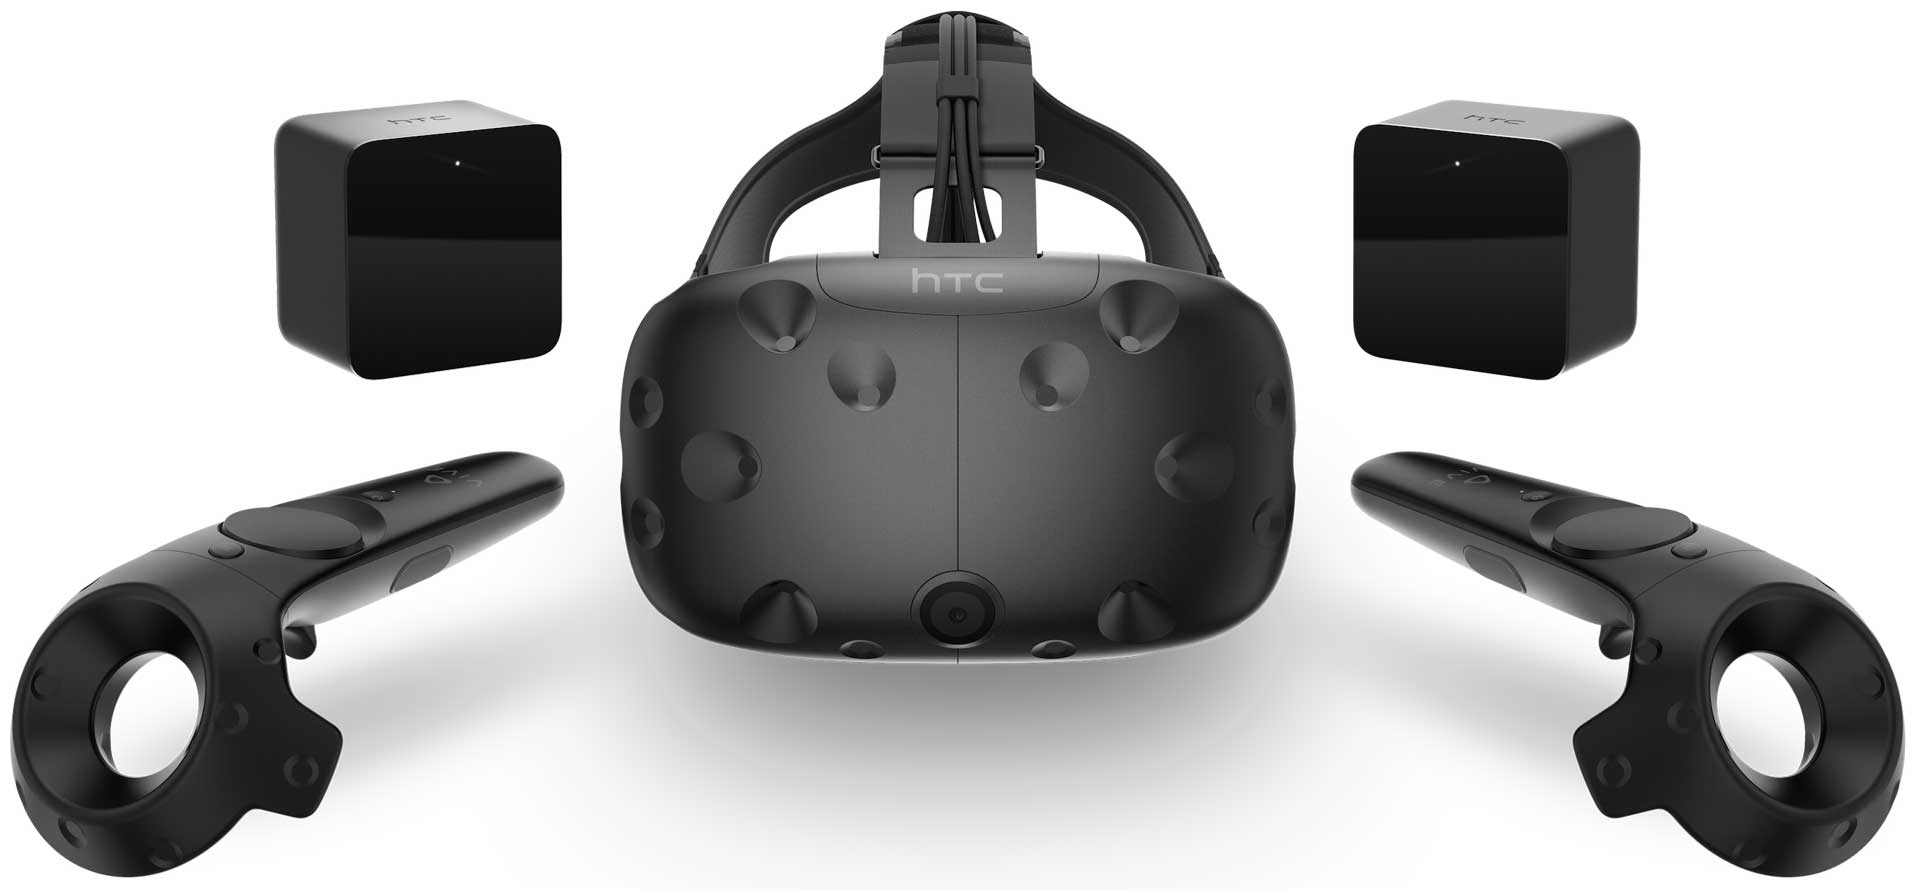 HTC Vive VR review: don't believe the hype - VG247